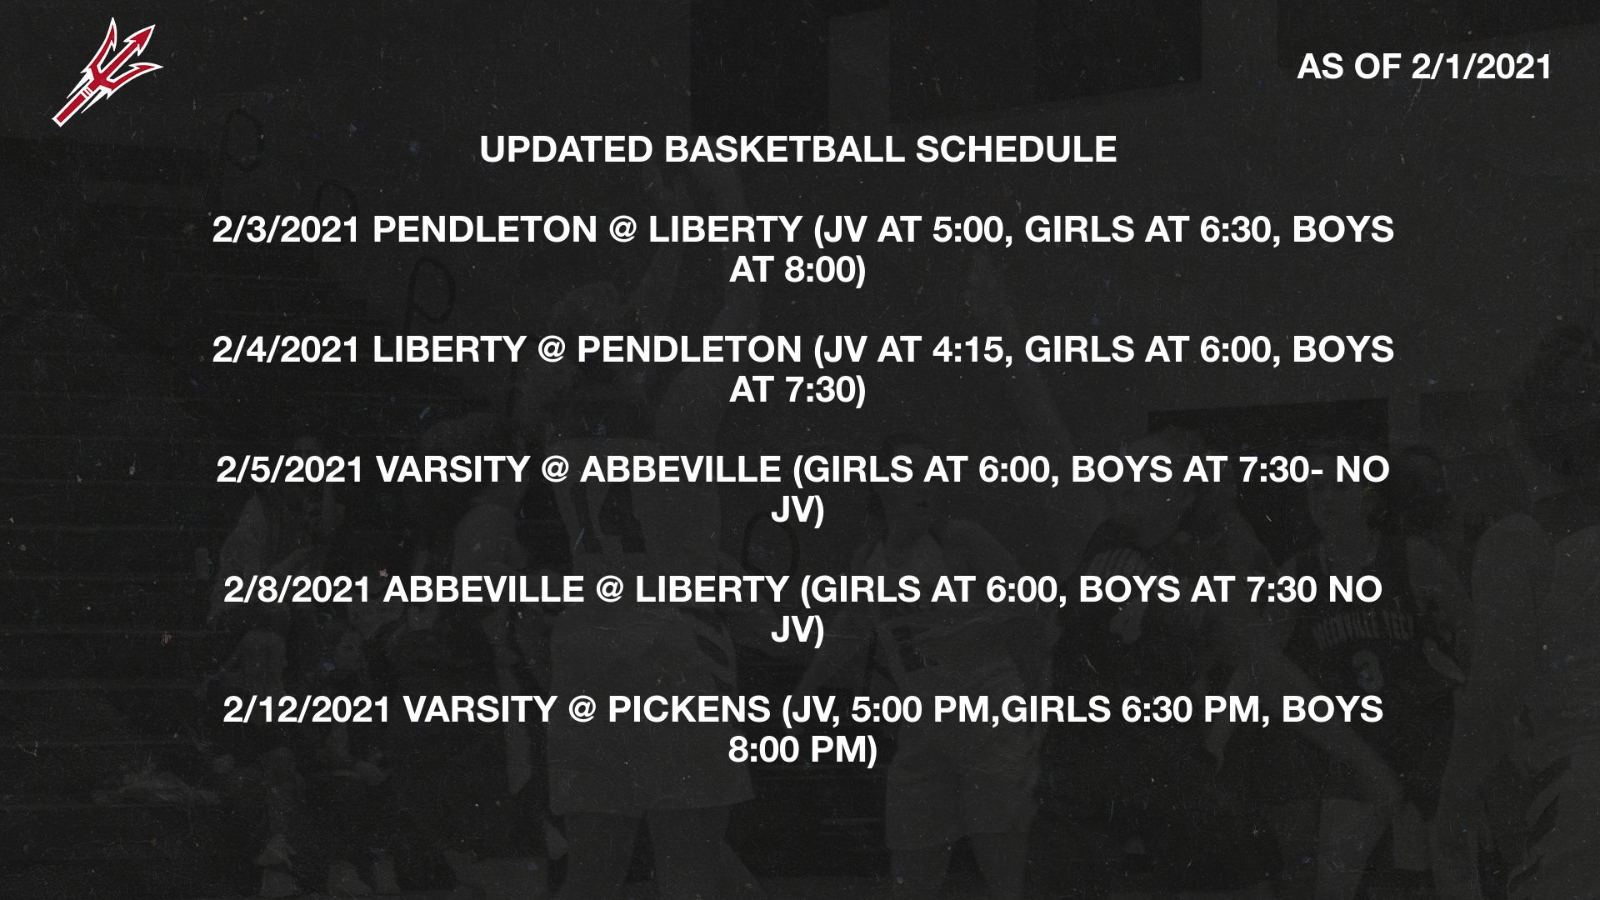 Red Devil Basketball- Rest of the Season as of 2/1/2021